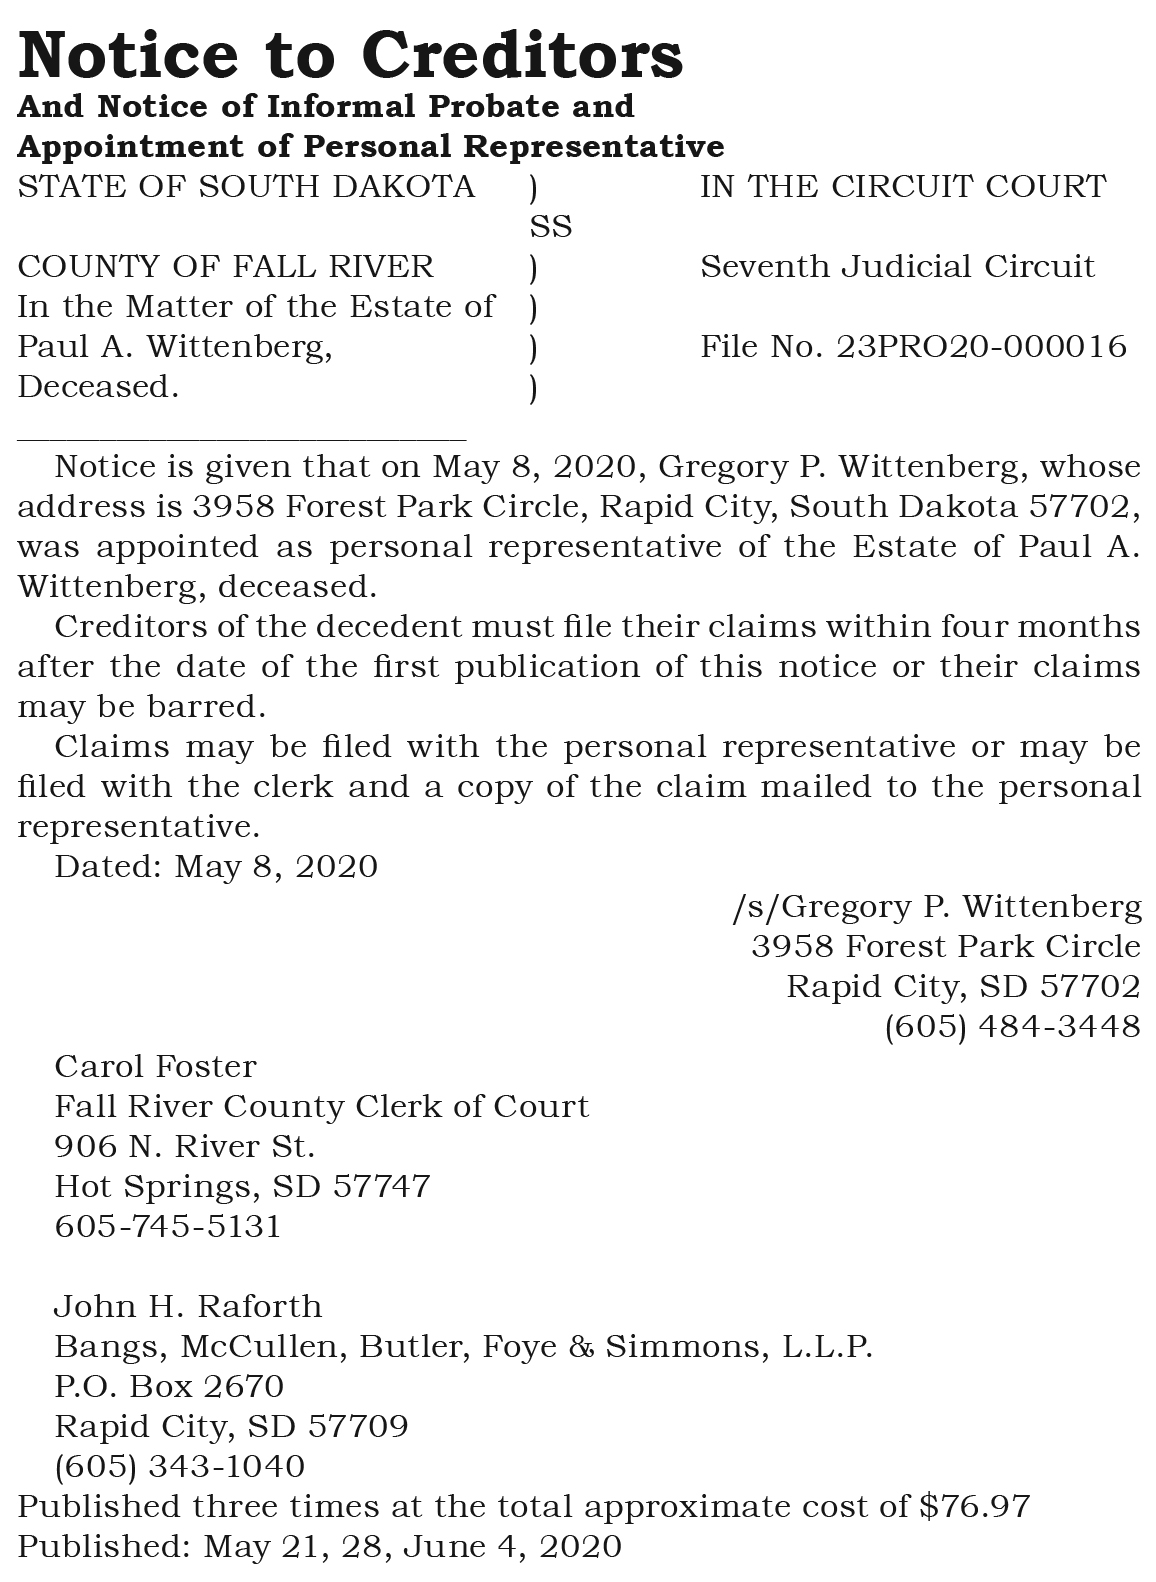 Notice to Creditors Wittenberg